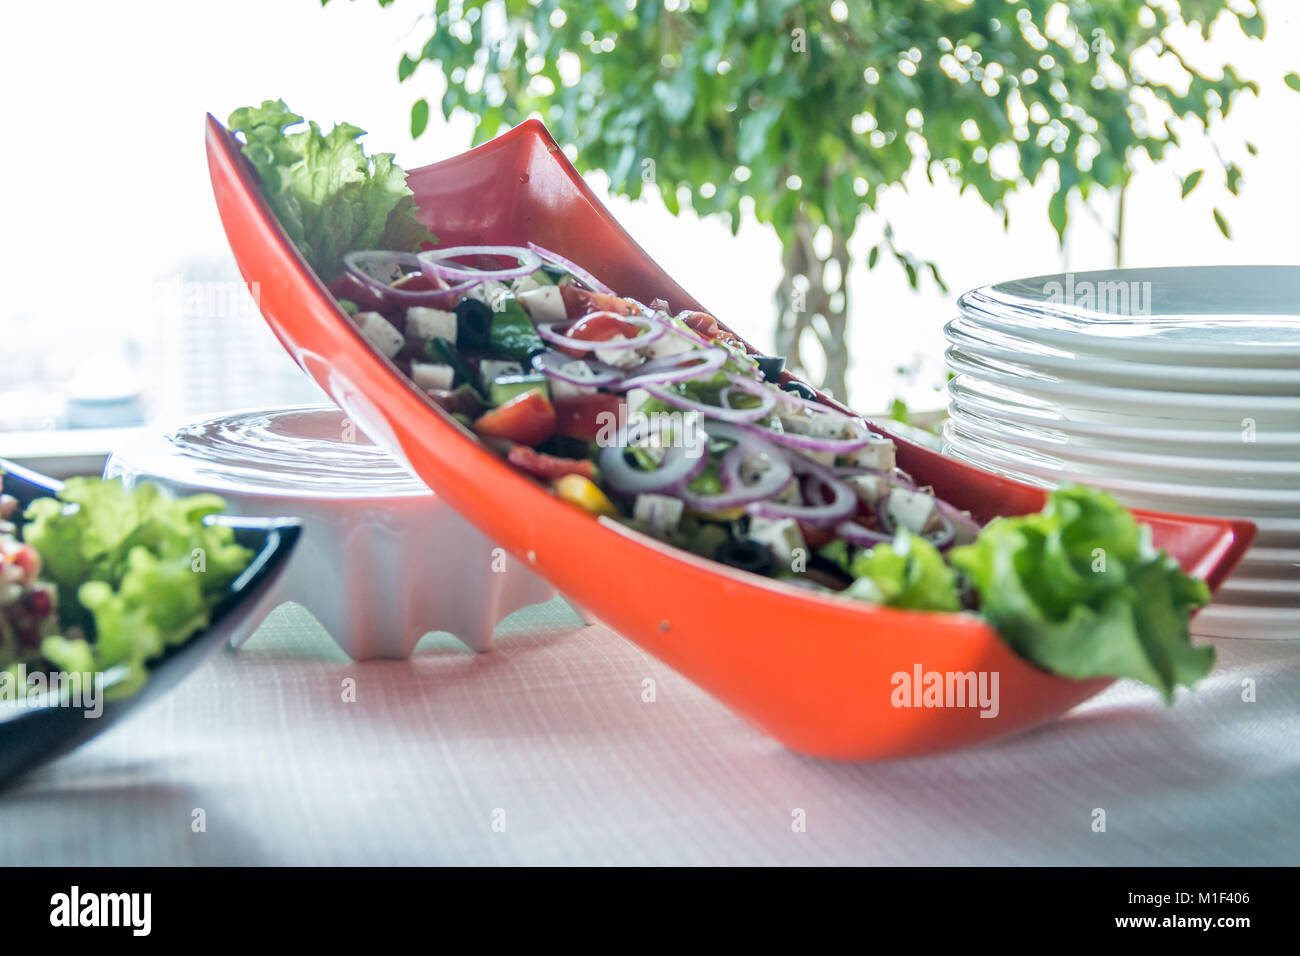 Salad with sausage, greens and other on table with white table. Catering concept. - Stock Image